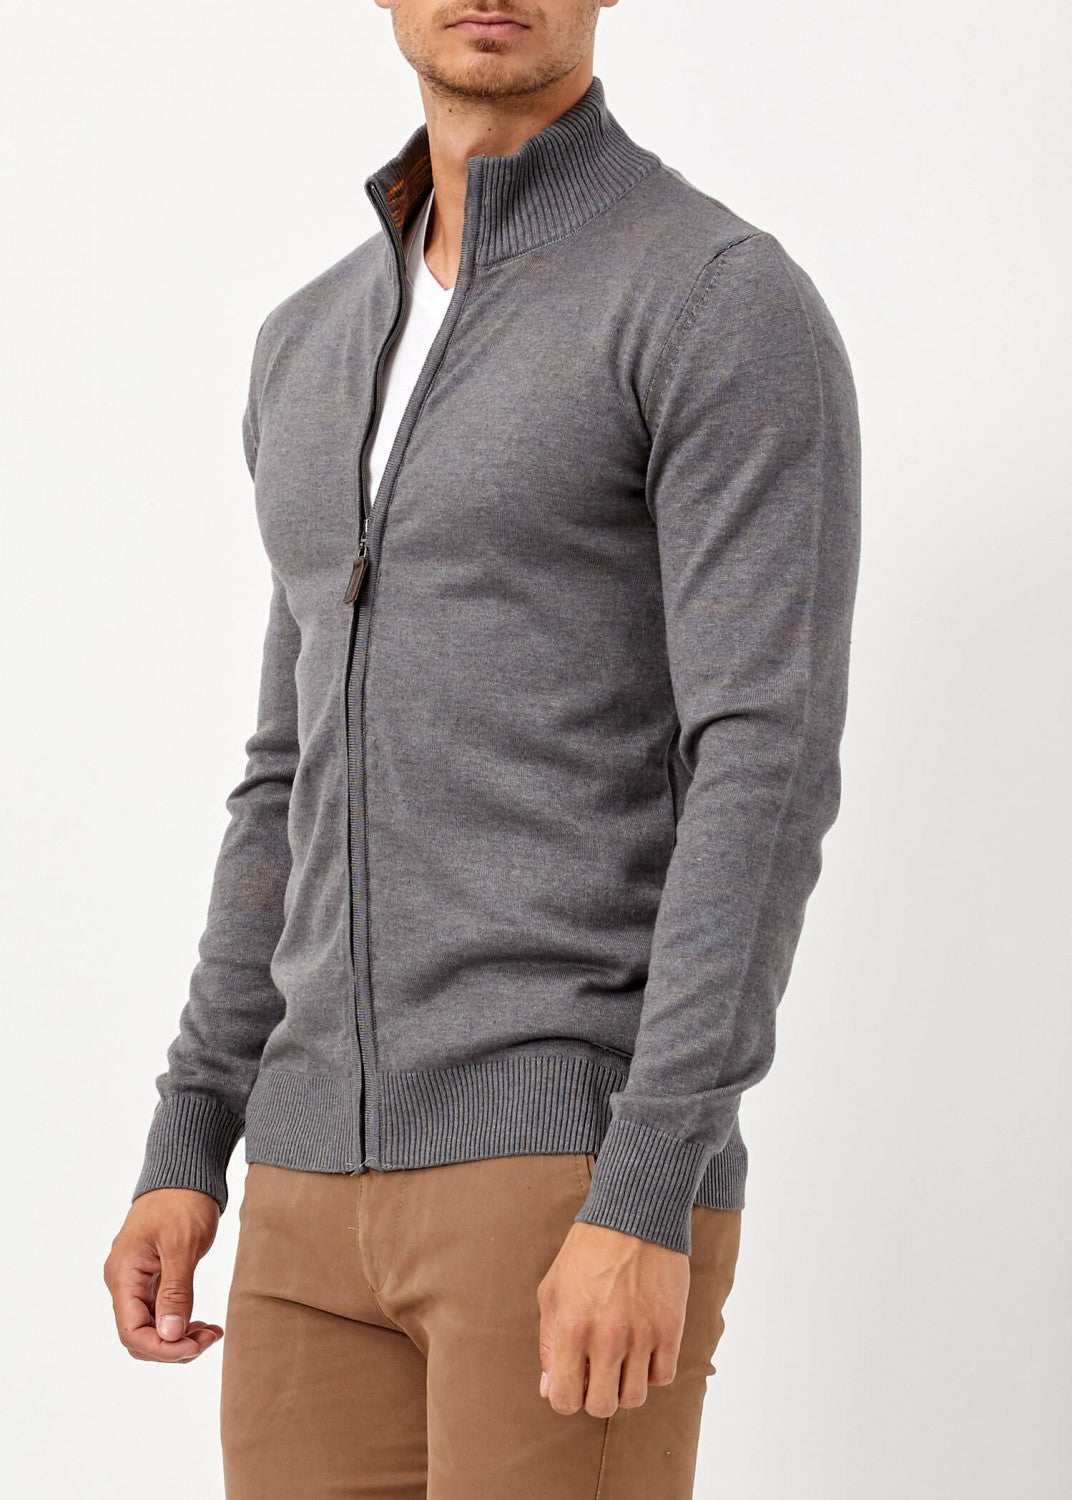 Men's Zipped Dark Grey Winter Cardigan - THE UNIQUE FIT